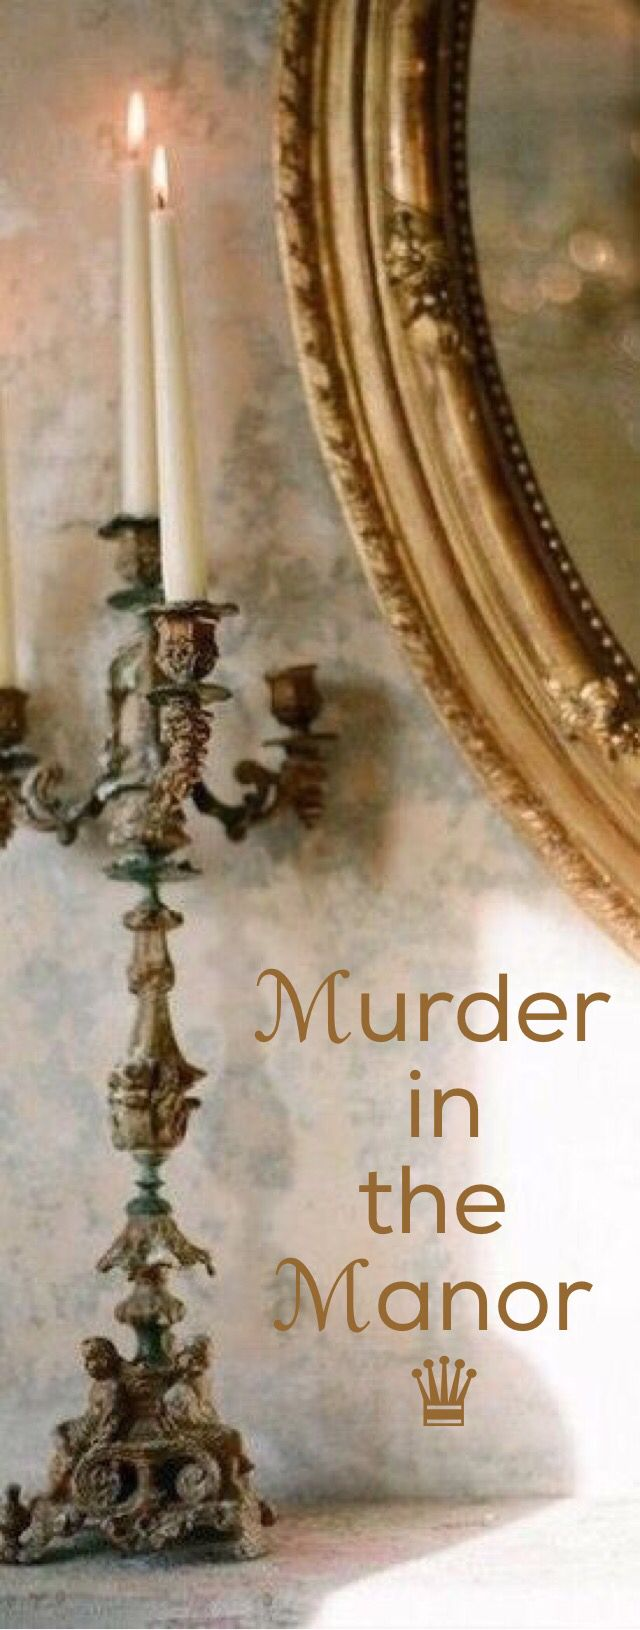 ℳurder in the ℳanor ♛